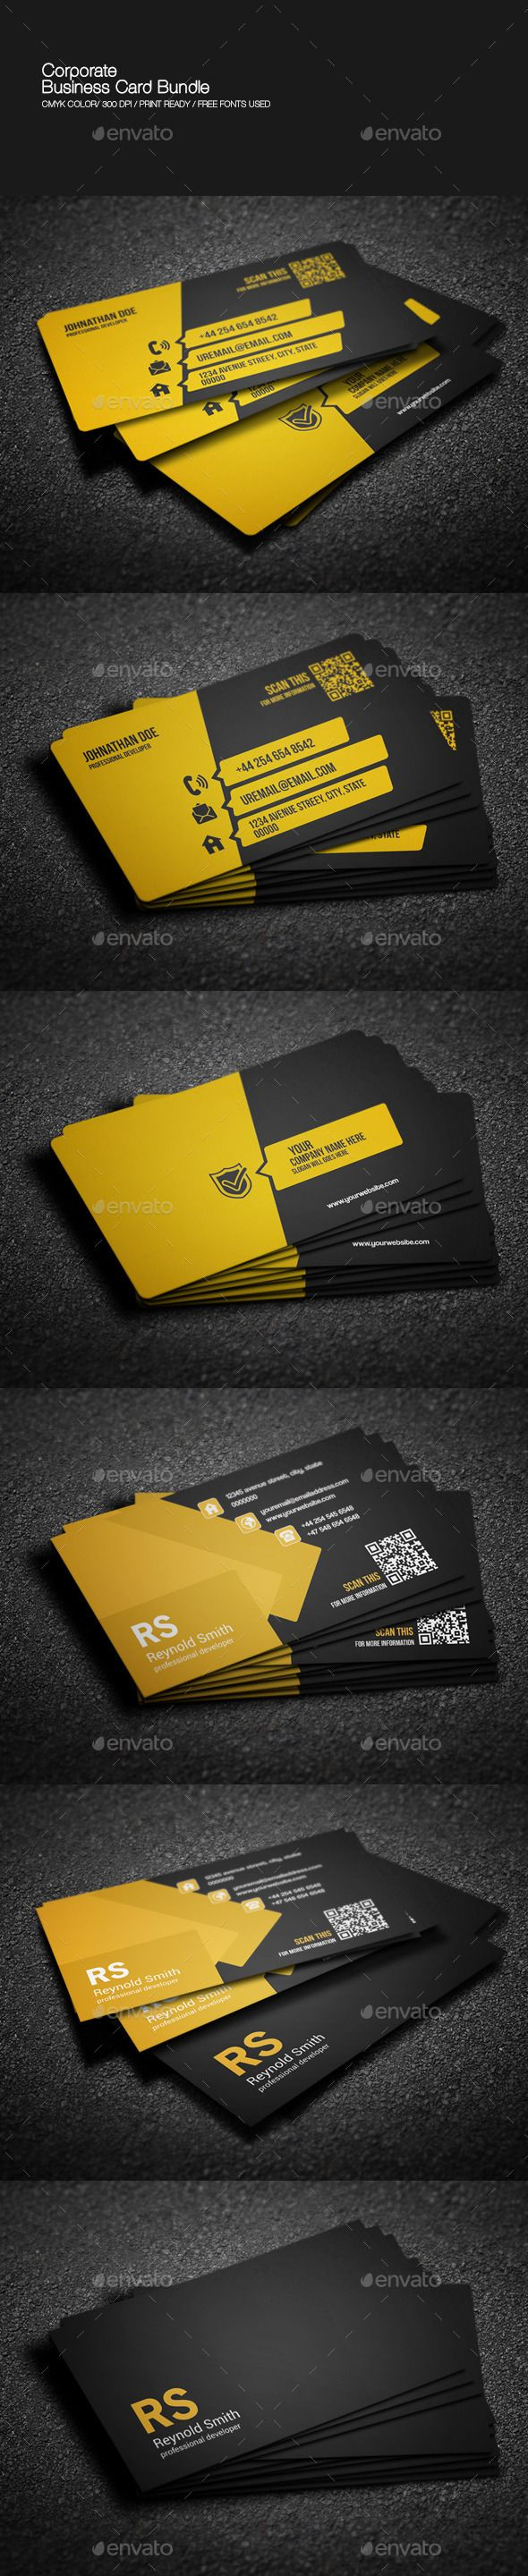 496 Best Business Cards Design Images On Pinterest Business Card